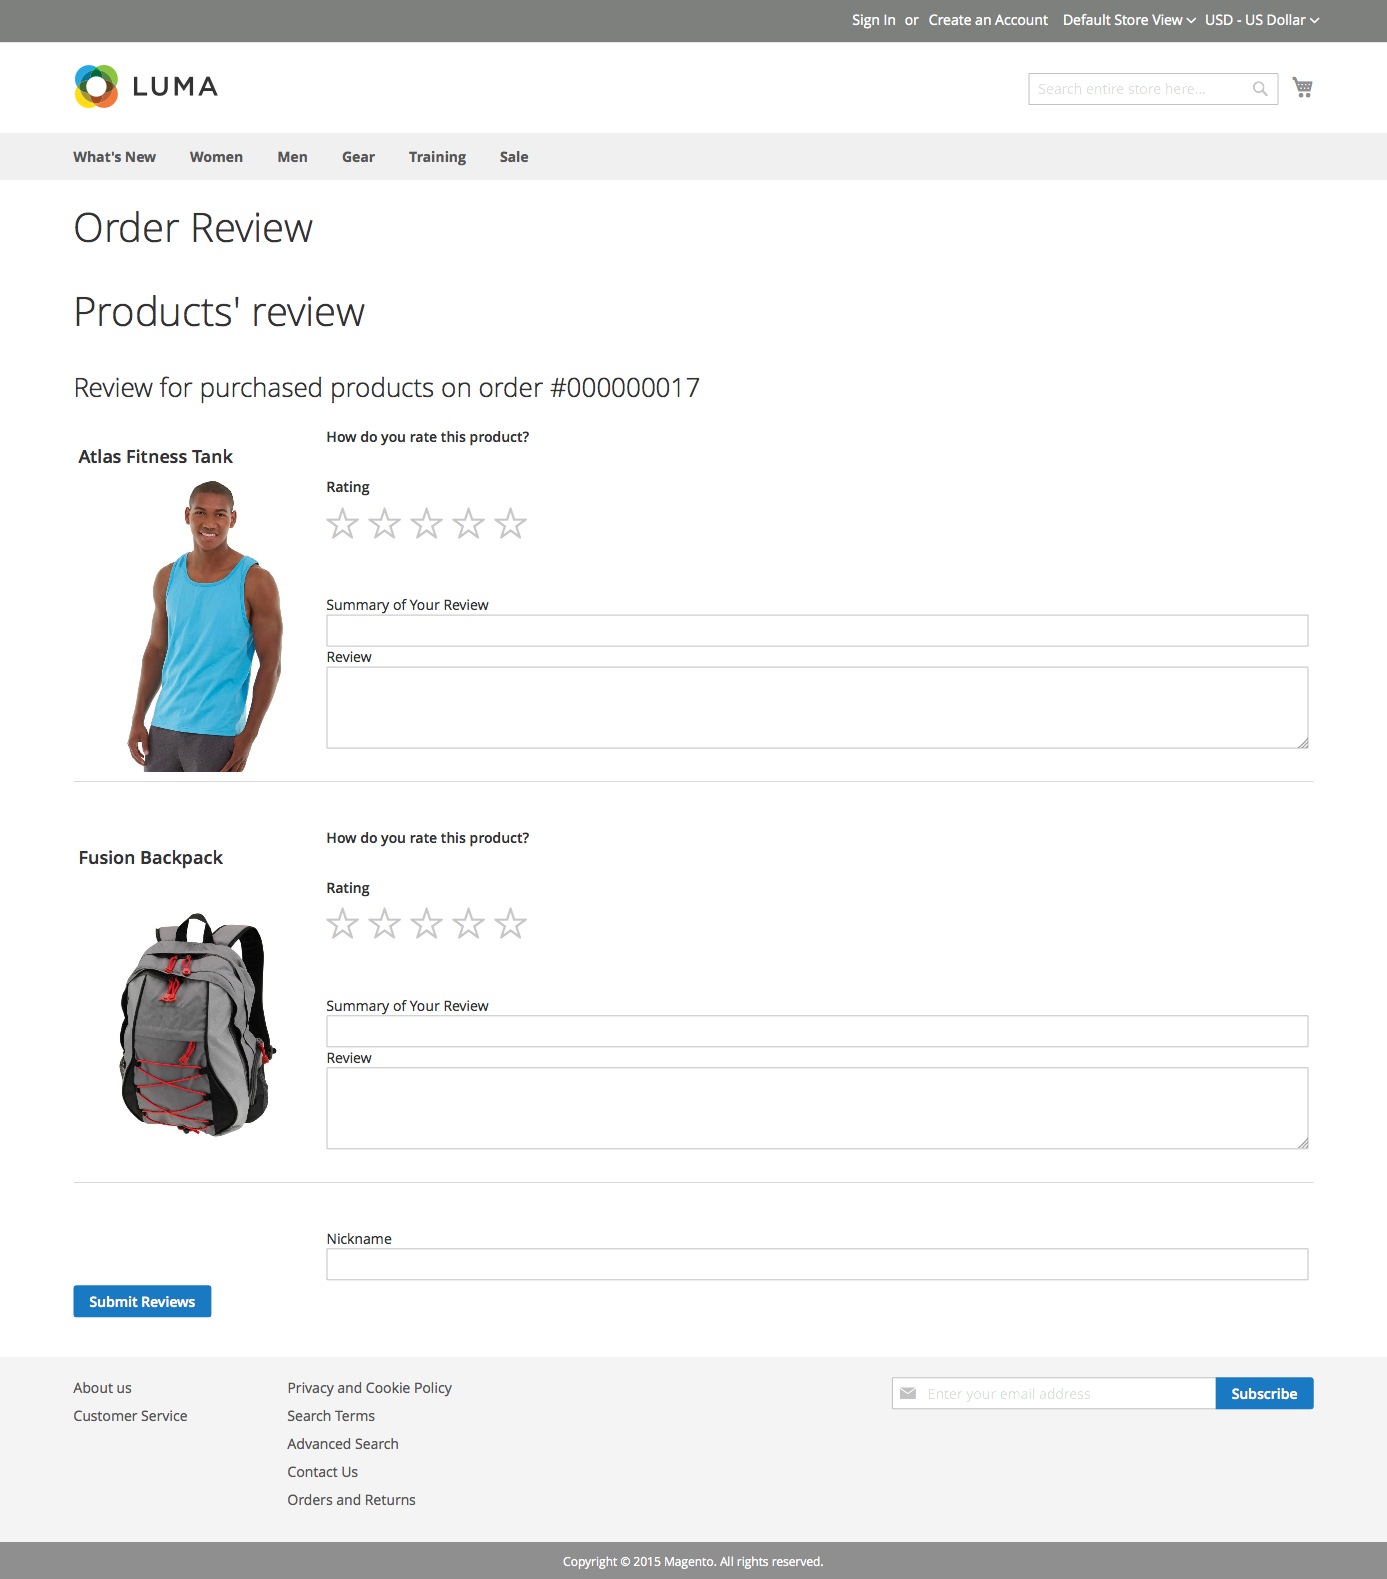 Products review page